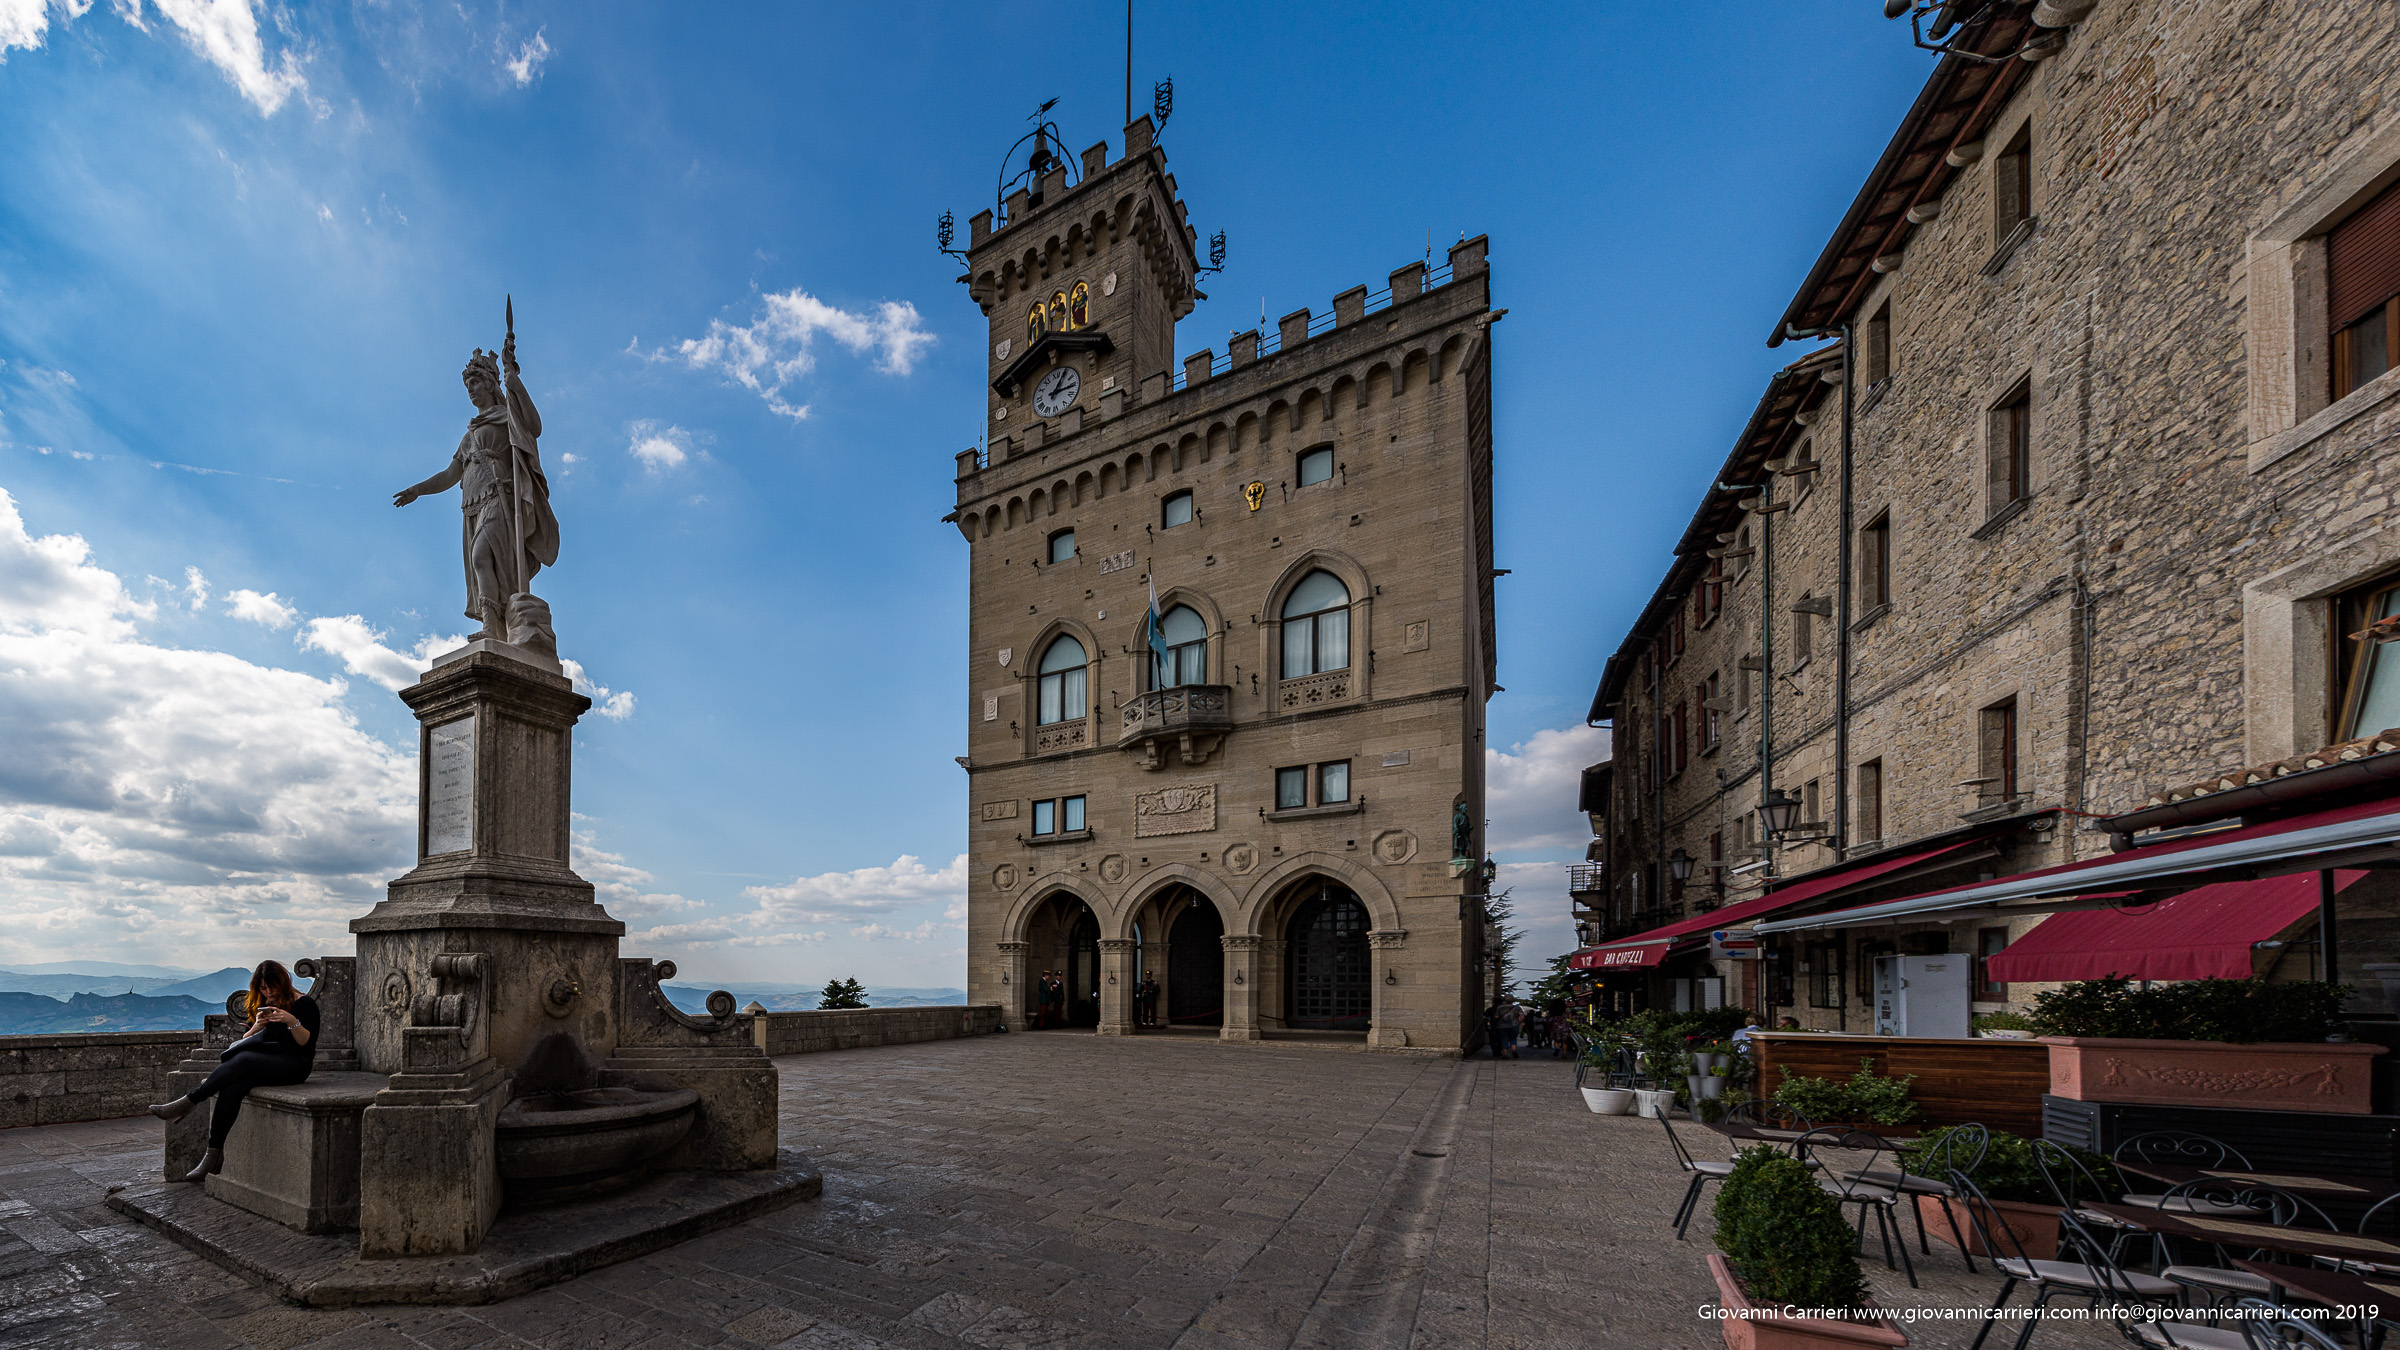 Photographs of San Marino